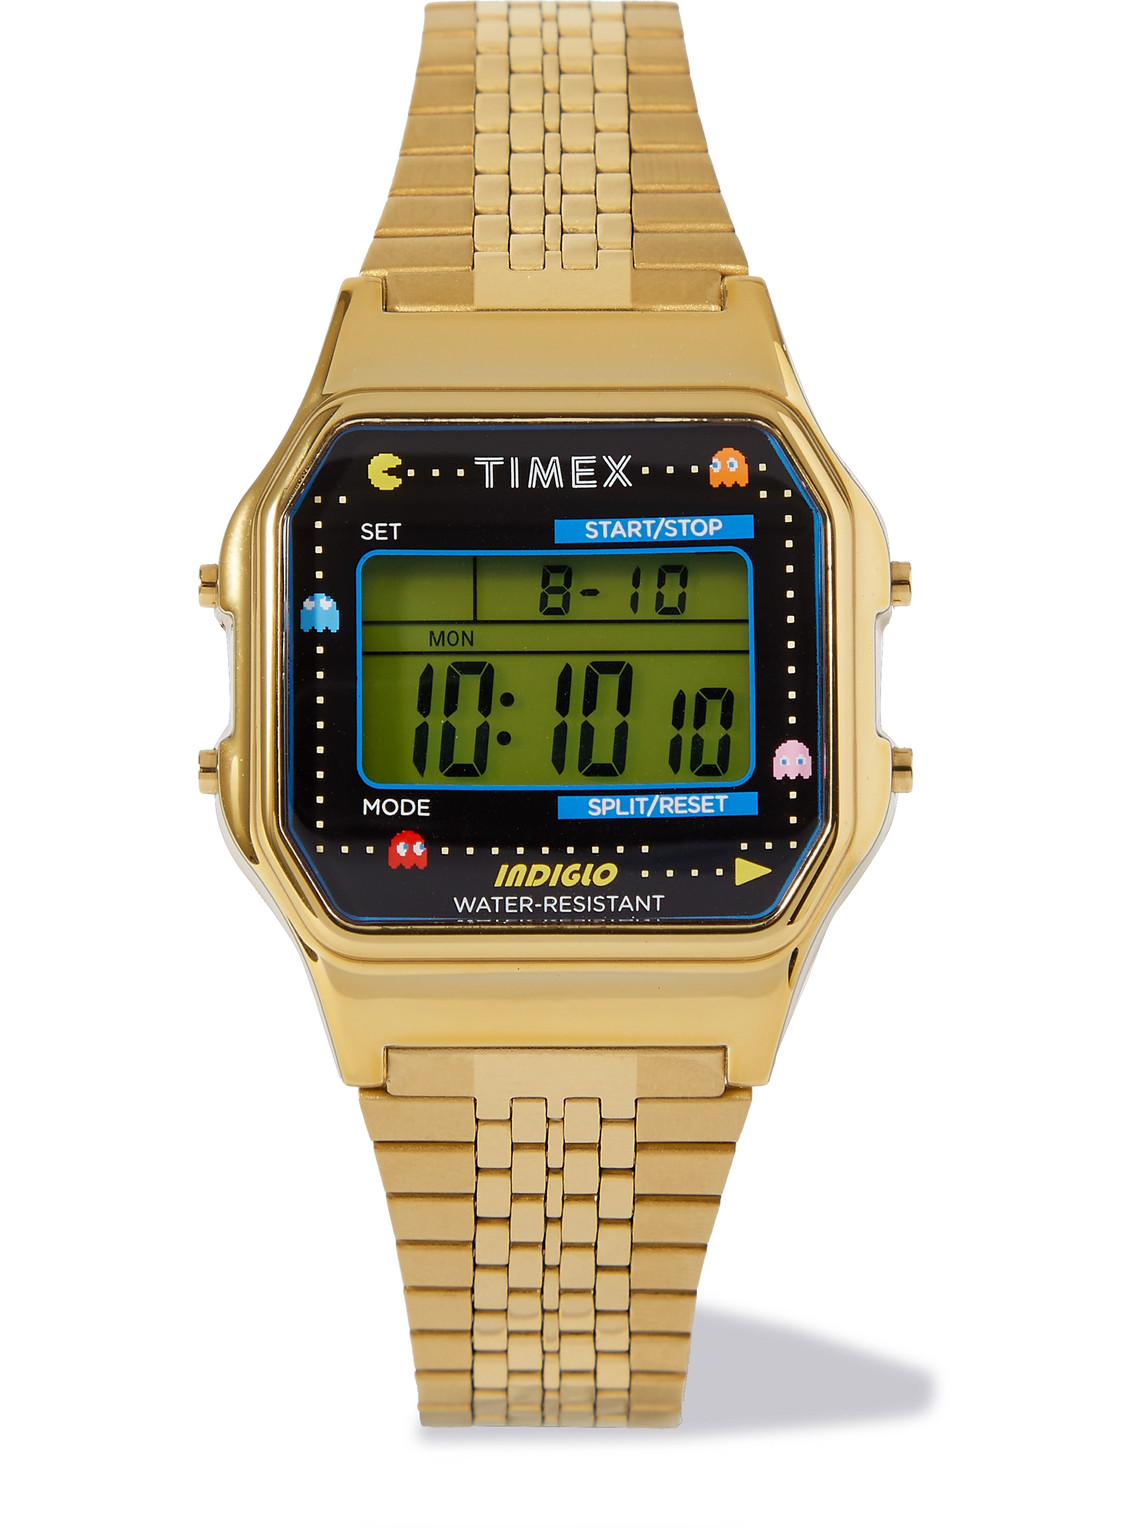 TIMEX PAC-MAN T80 34MM GOLD-TONE STAINLESS STEEL DIGITAL WATCH